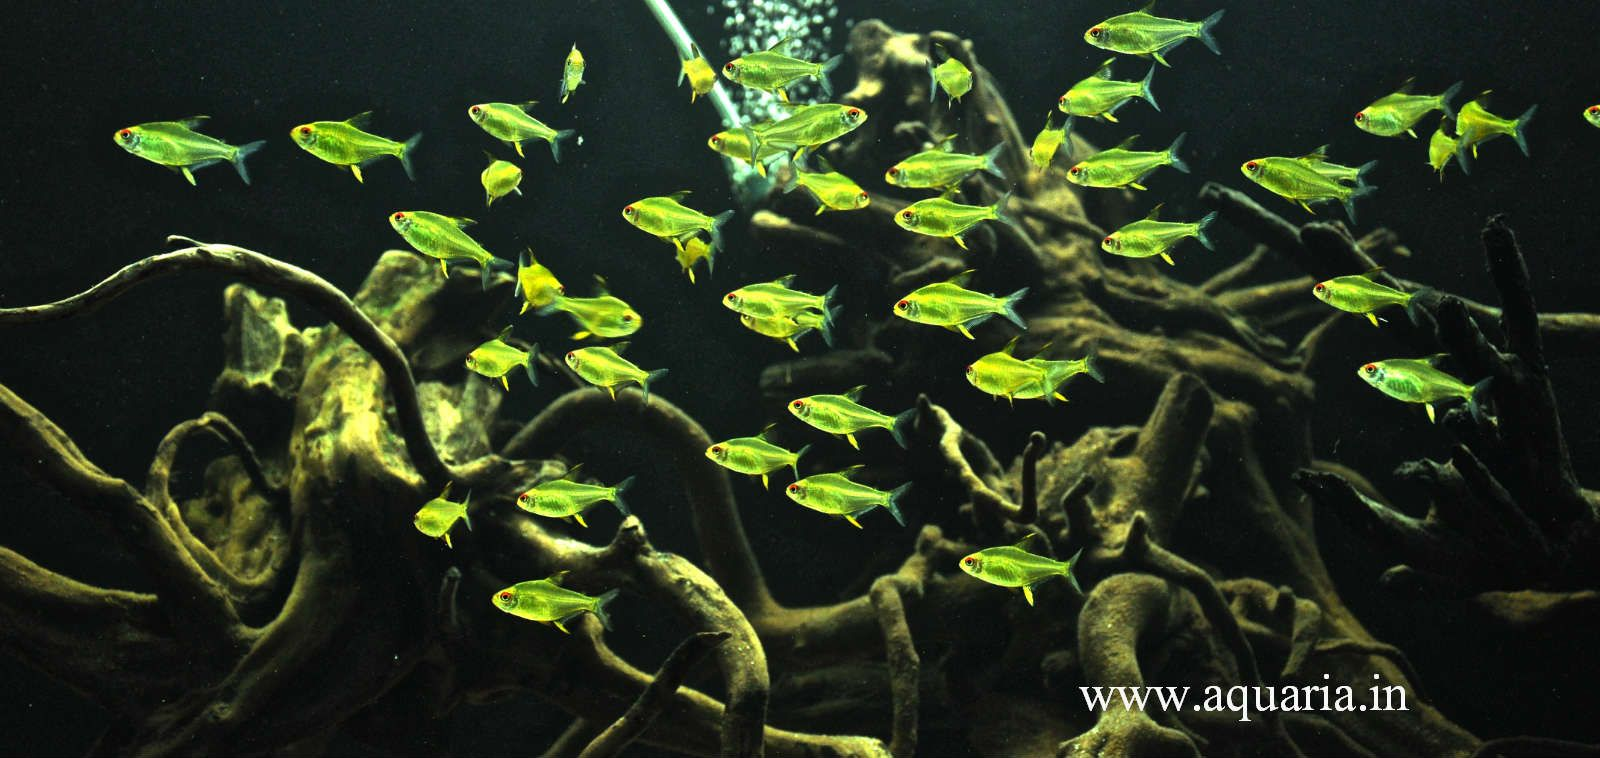 Aquarium fish tank in chennai - Planted Aquarium Fish Pictures Images Exotic Aquarium Fish Aquarium Plants